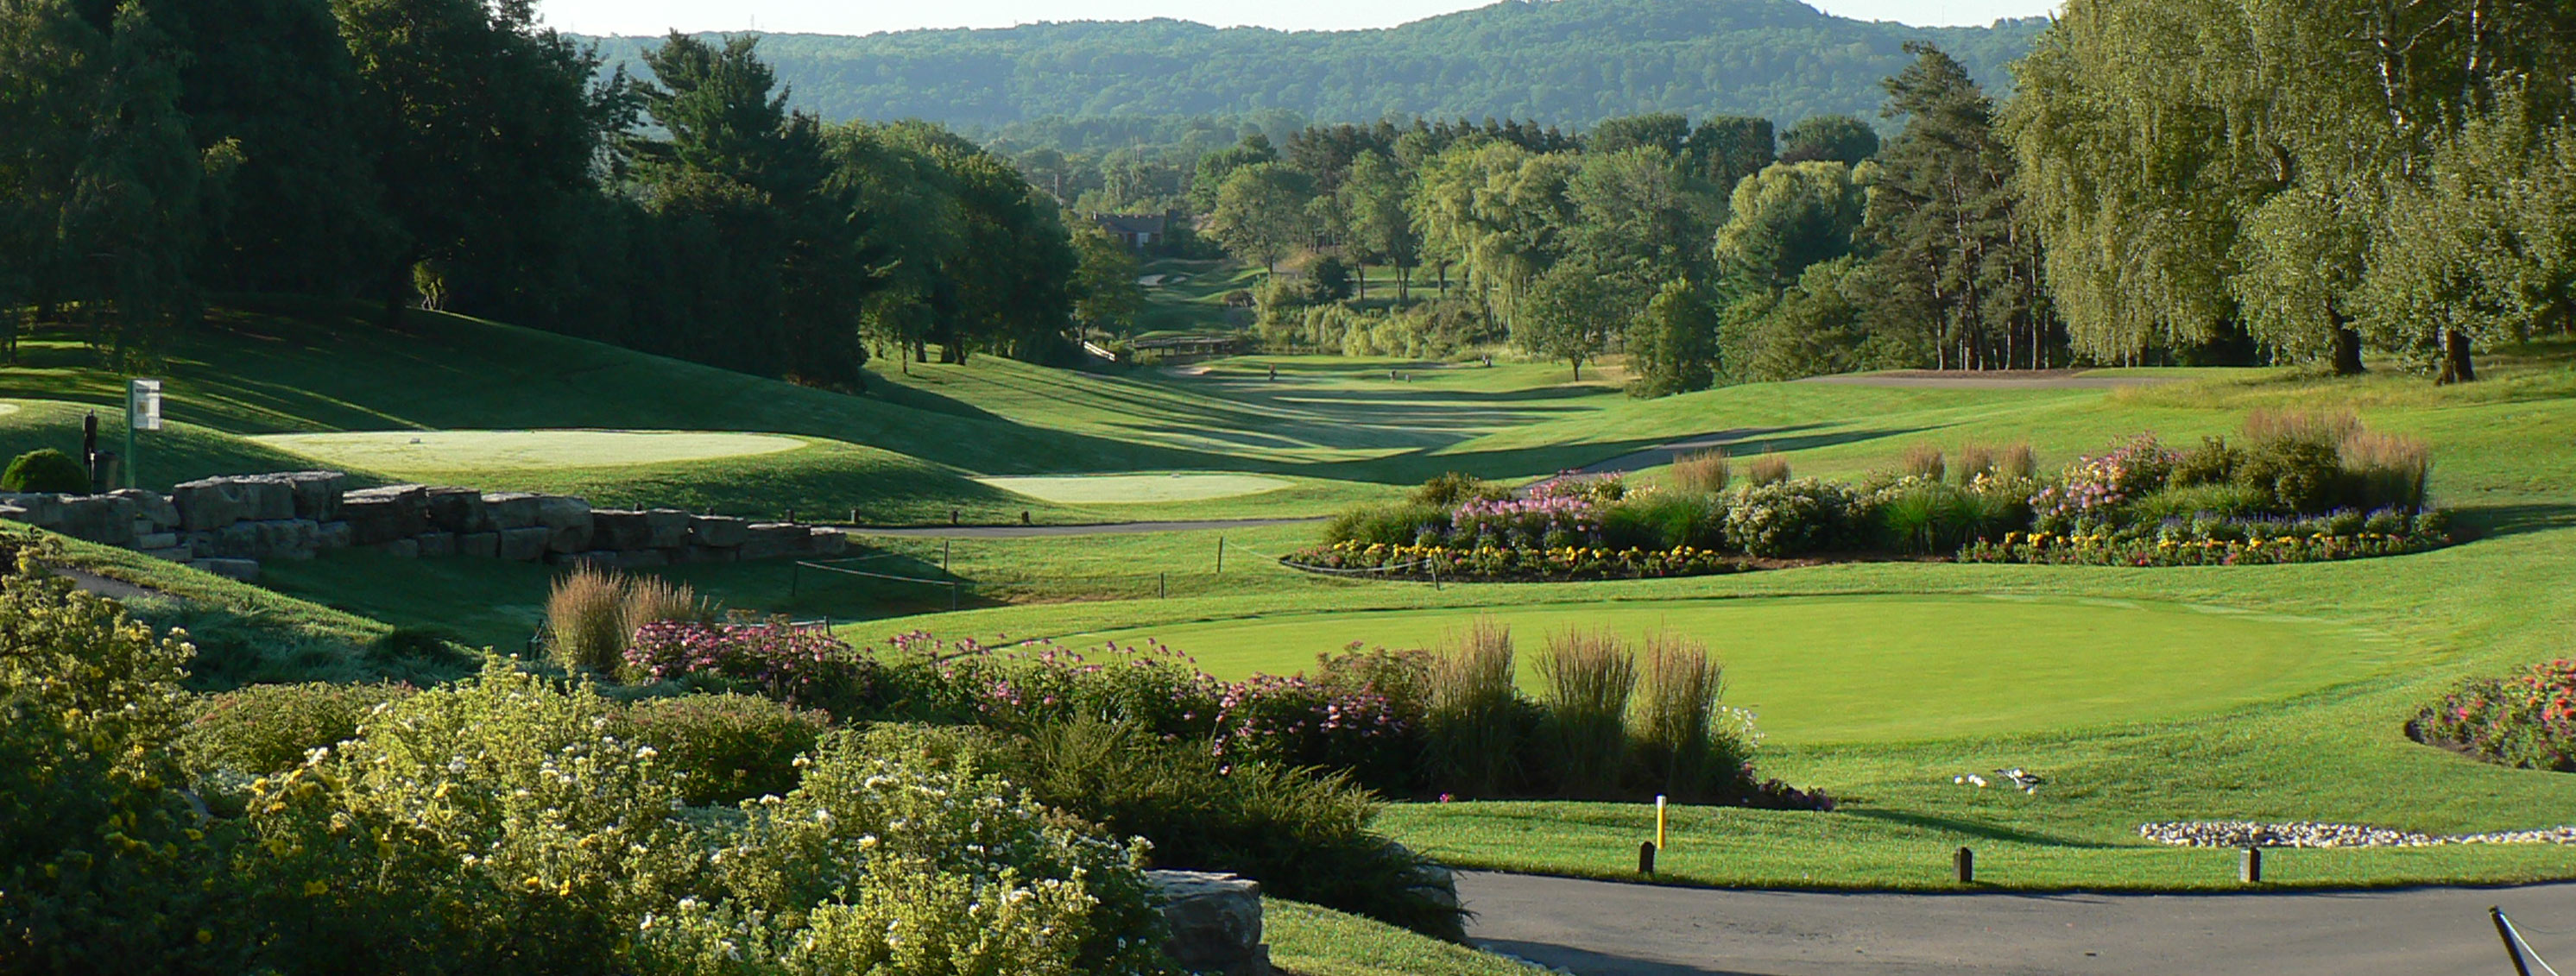 Overview of golf course named Dundas Valley Golf Club